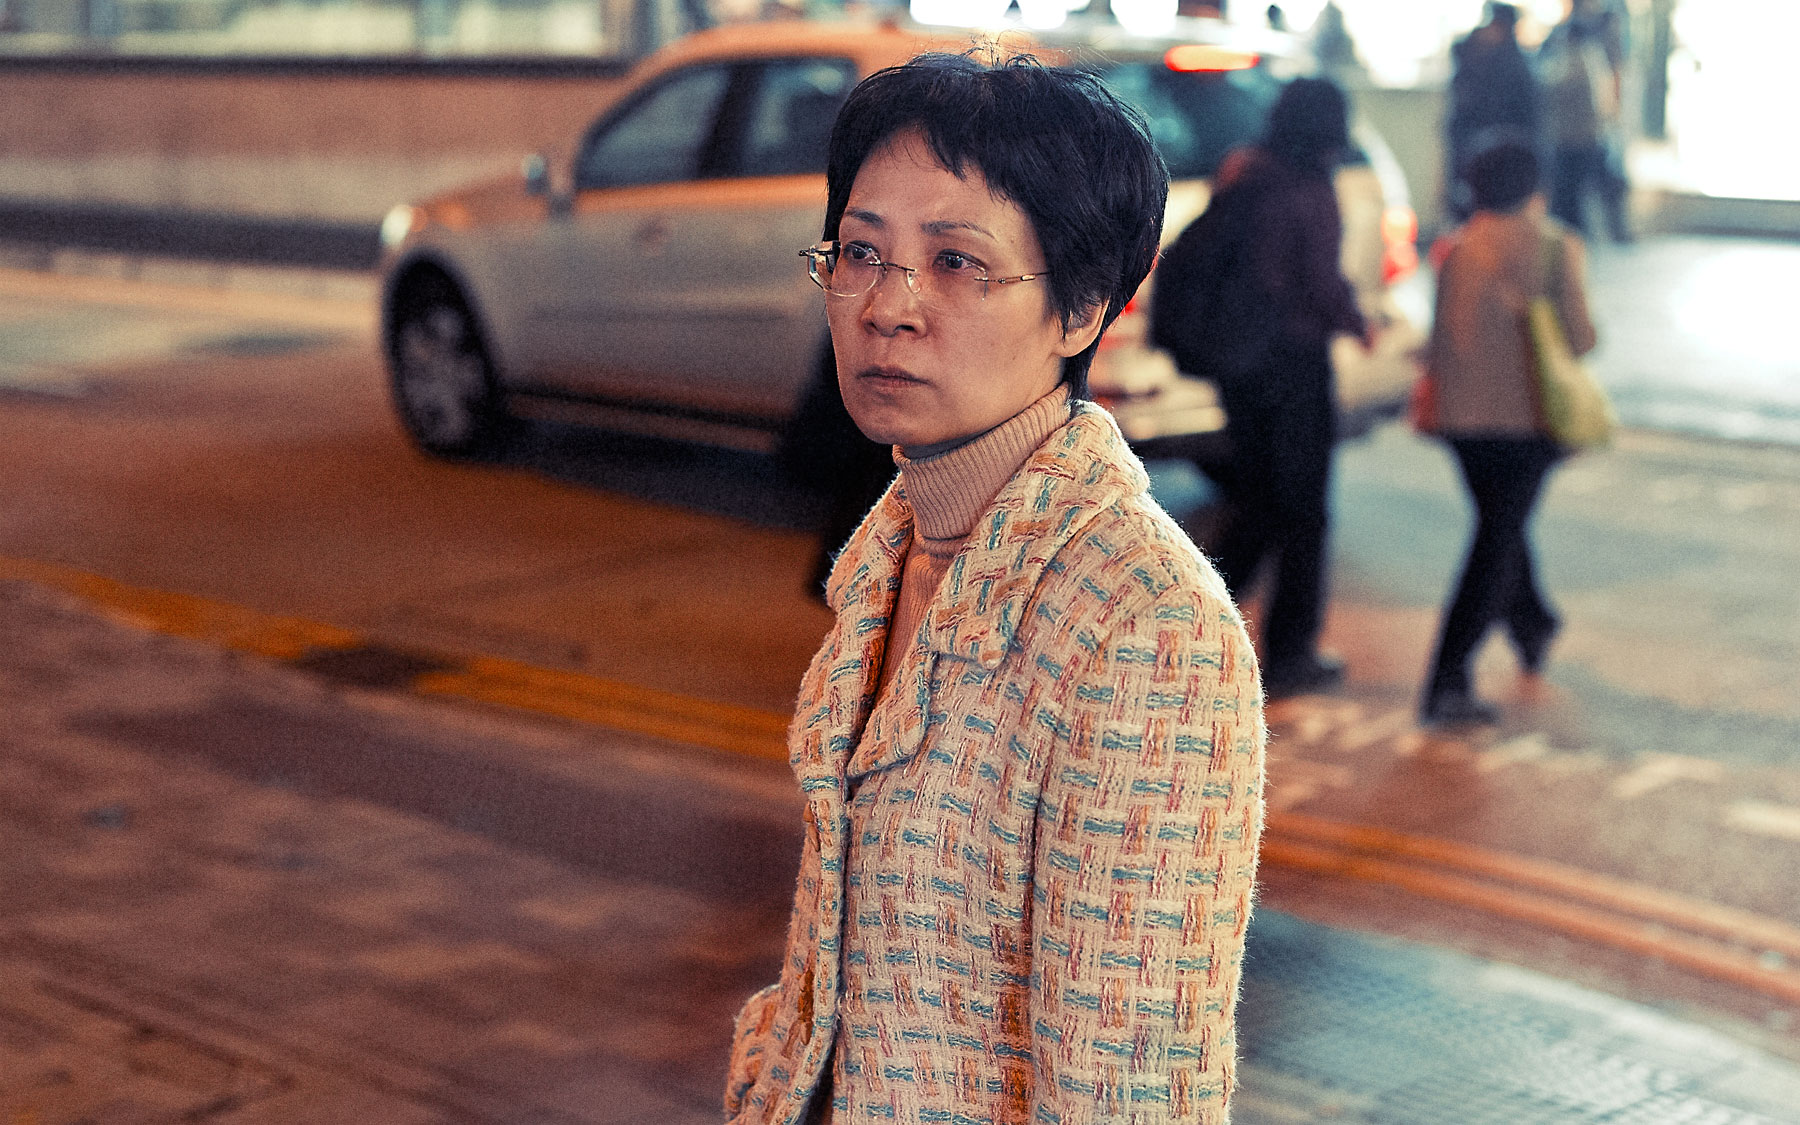 Good Boy Wolf Photographer, filmic portrait, Chinese woman walking down the street,